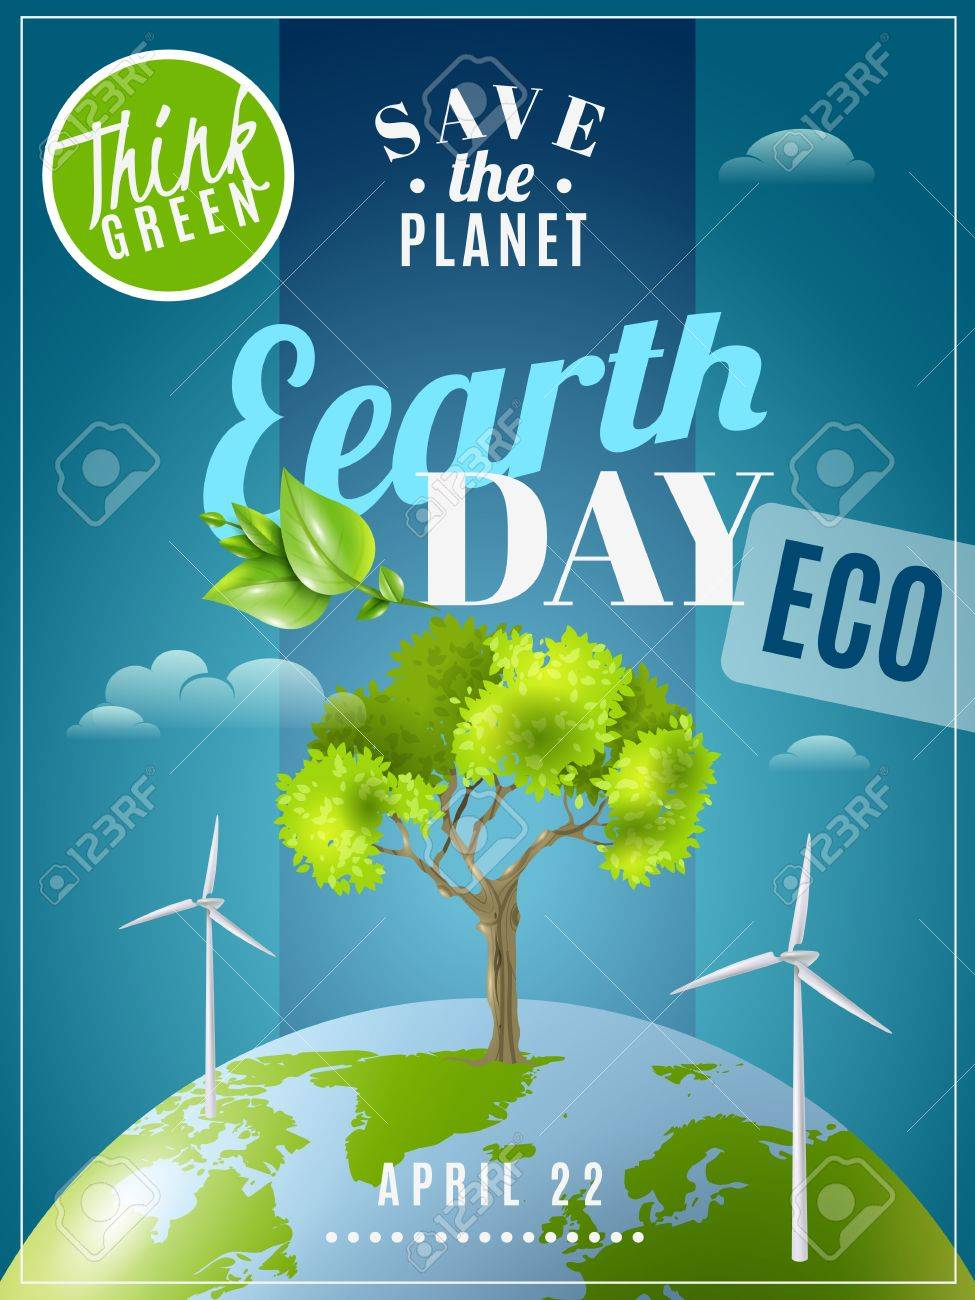 save planet earth day announcement environmental awareness advertisement eco poster with green energy sources colorful vector